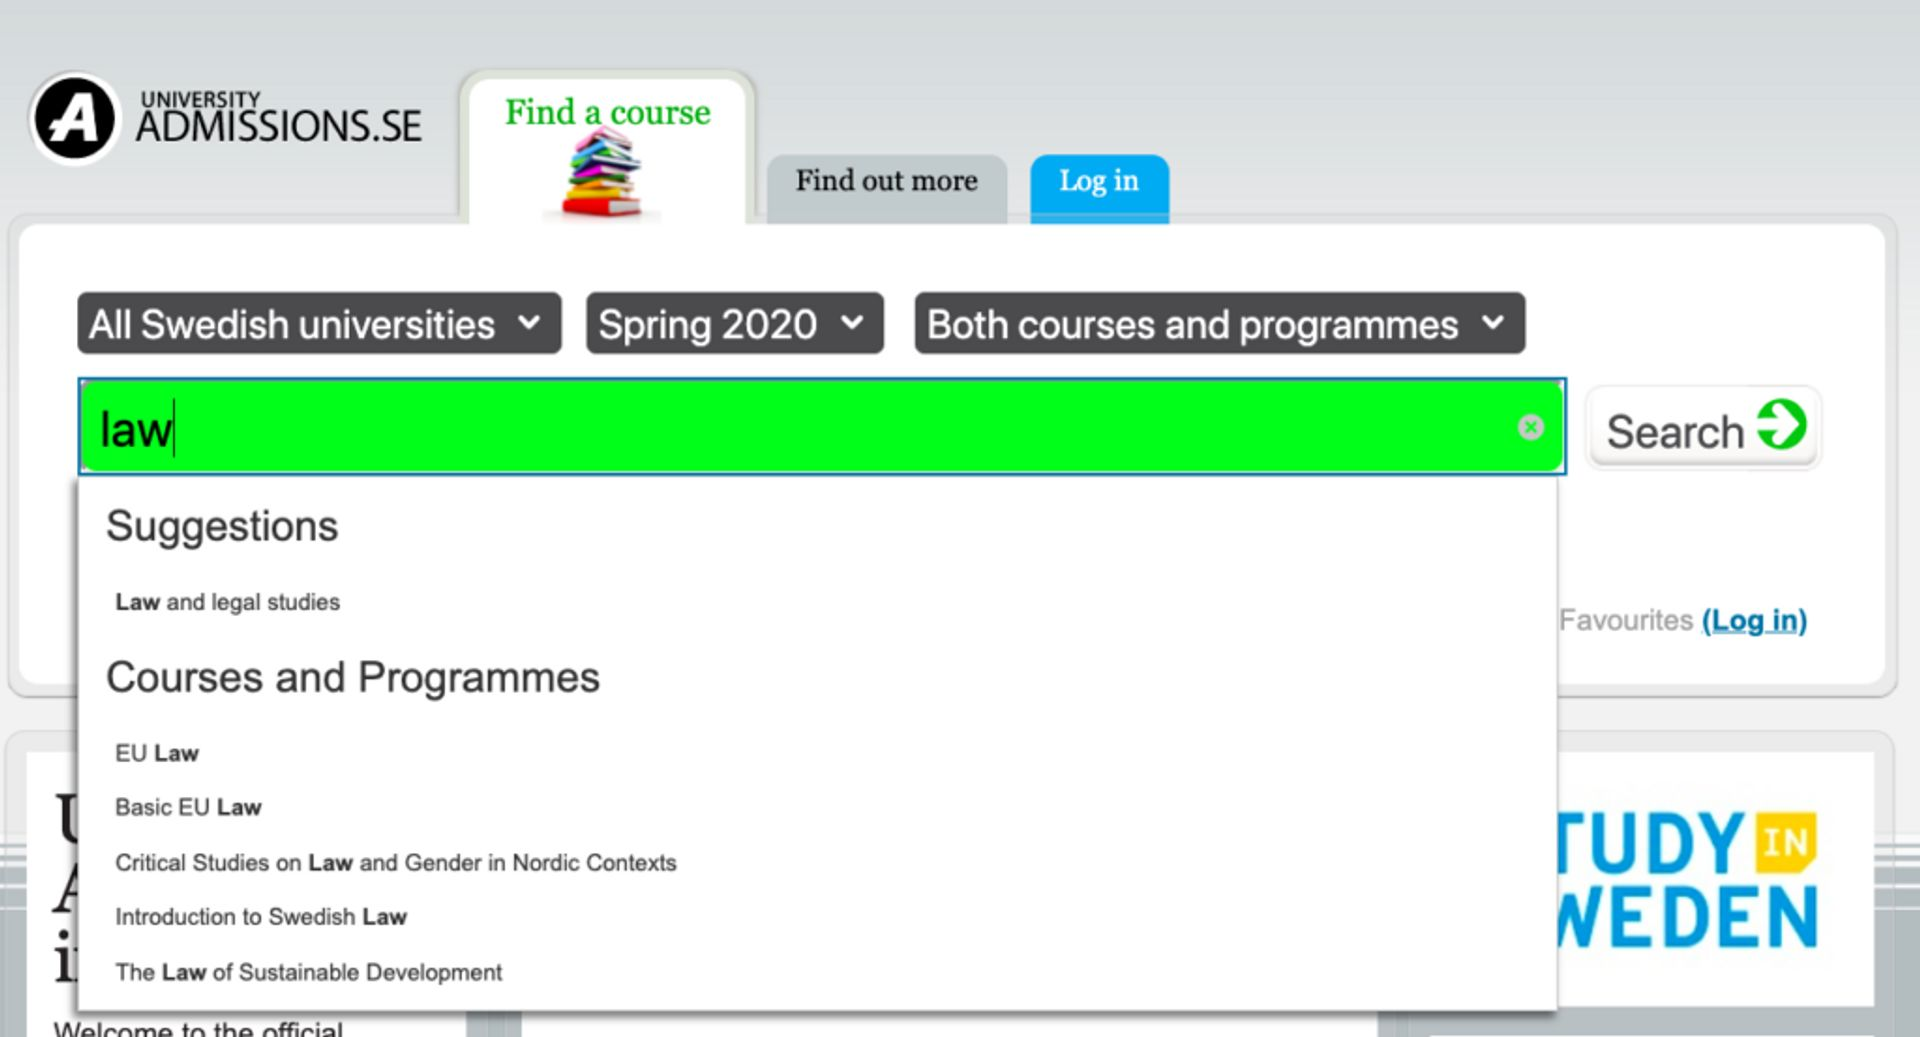 Screenshot of University Admissions frontpage.